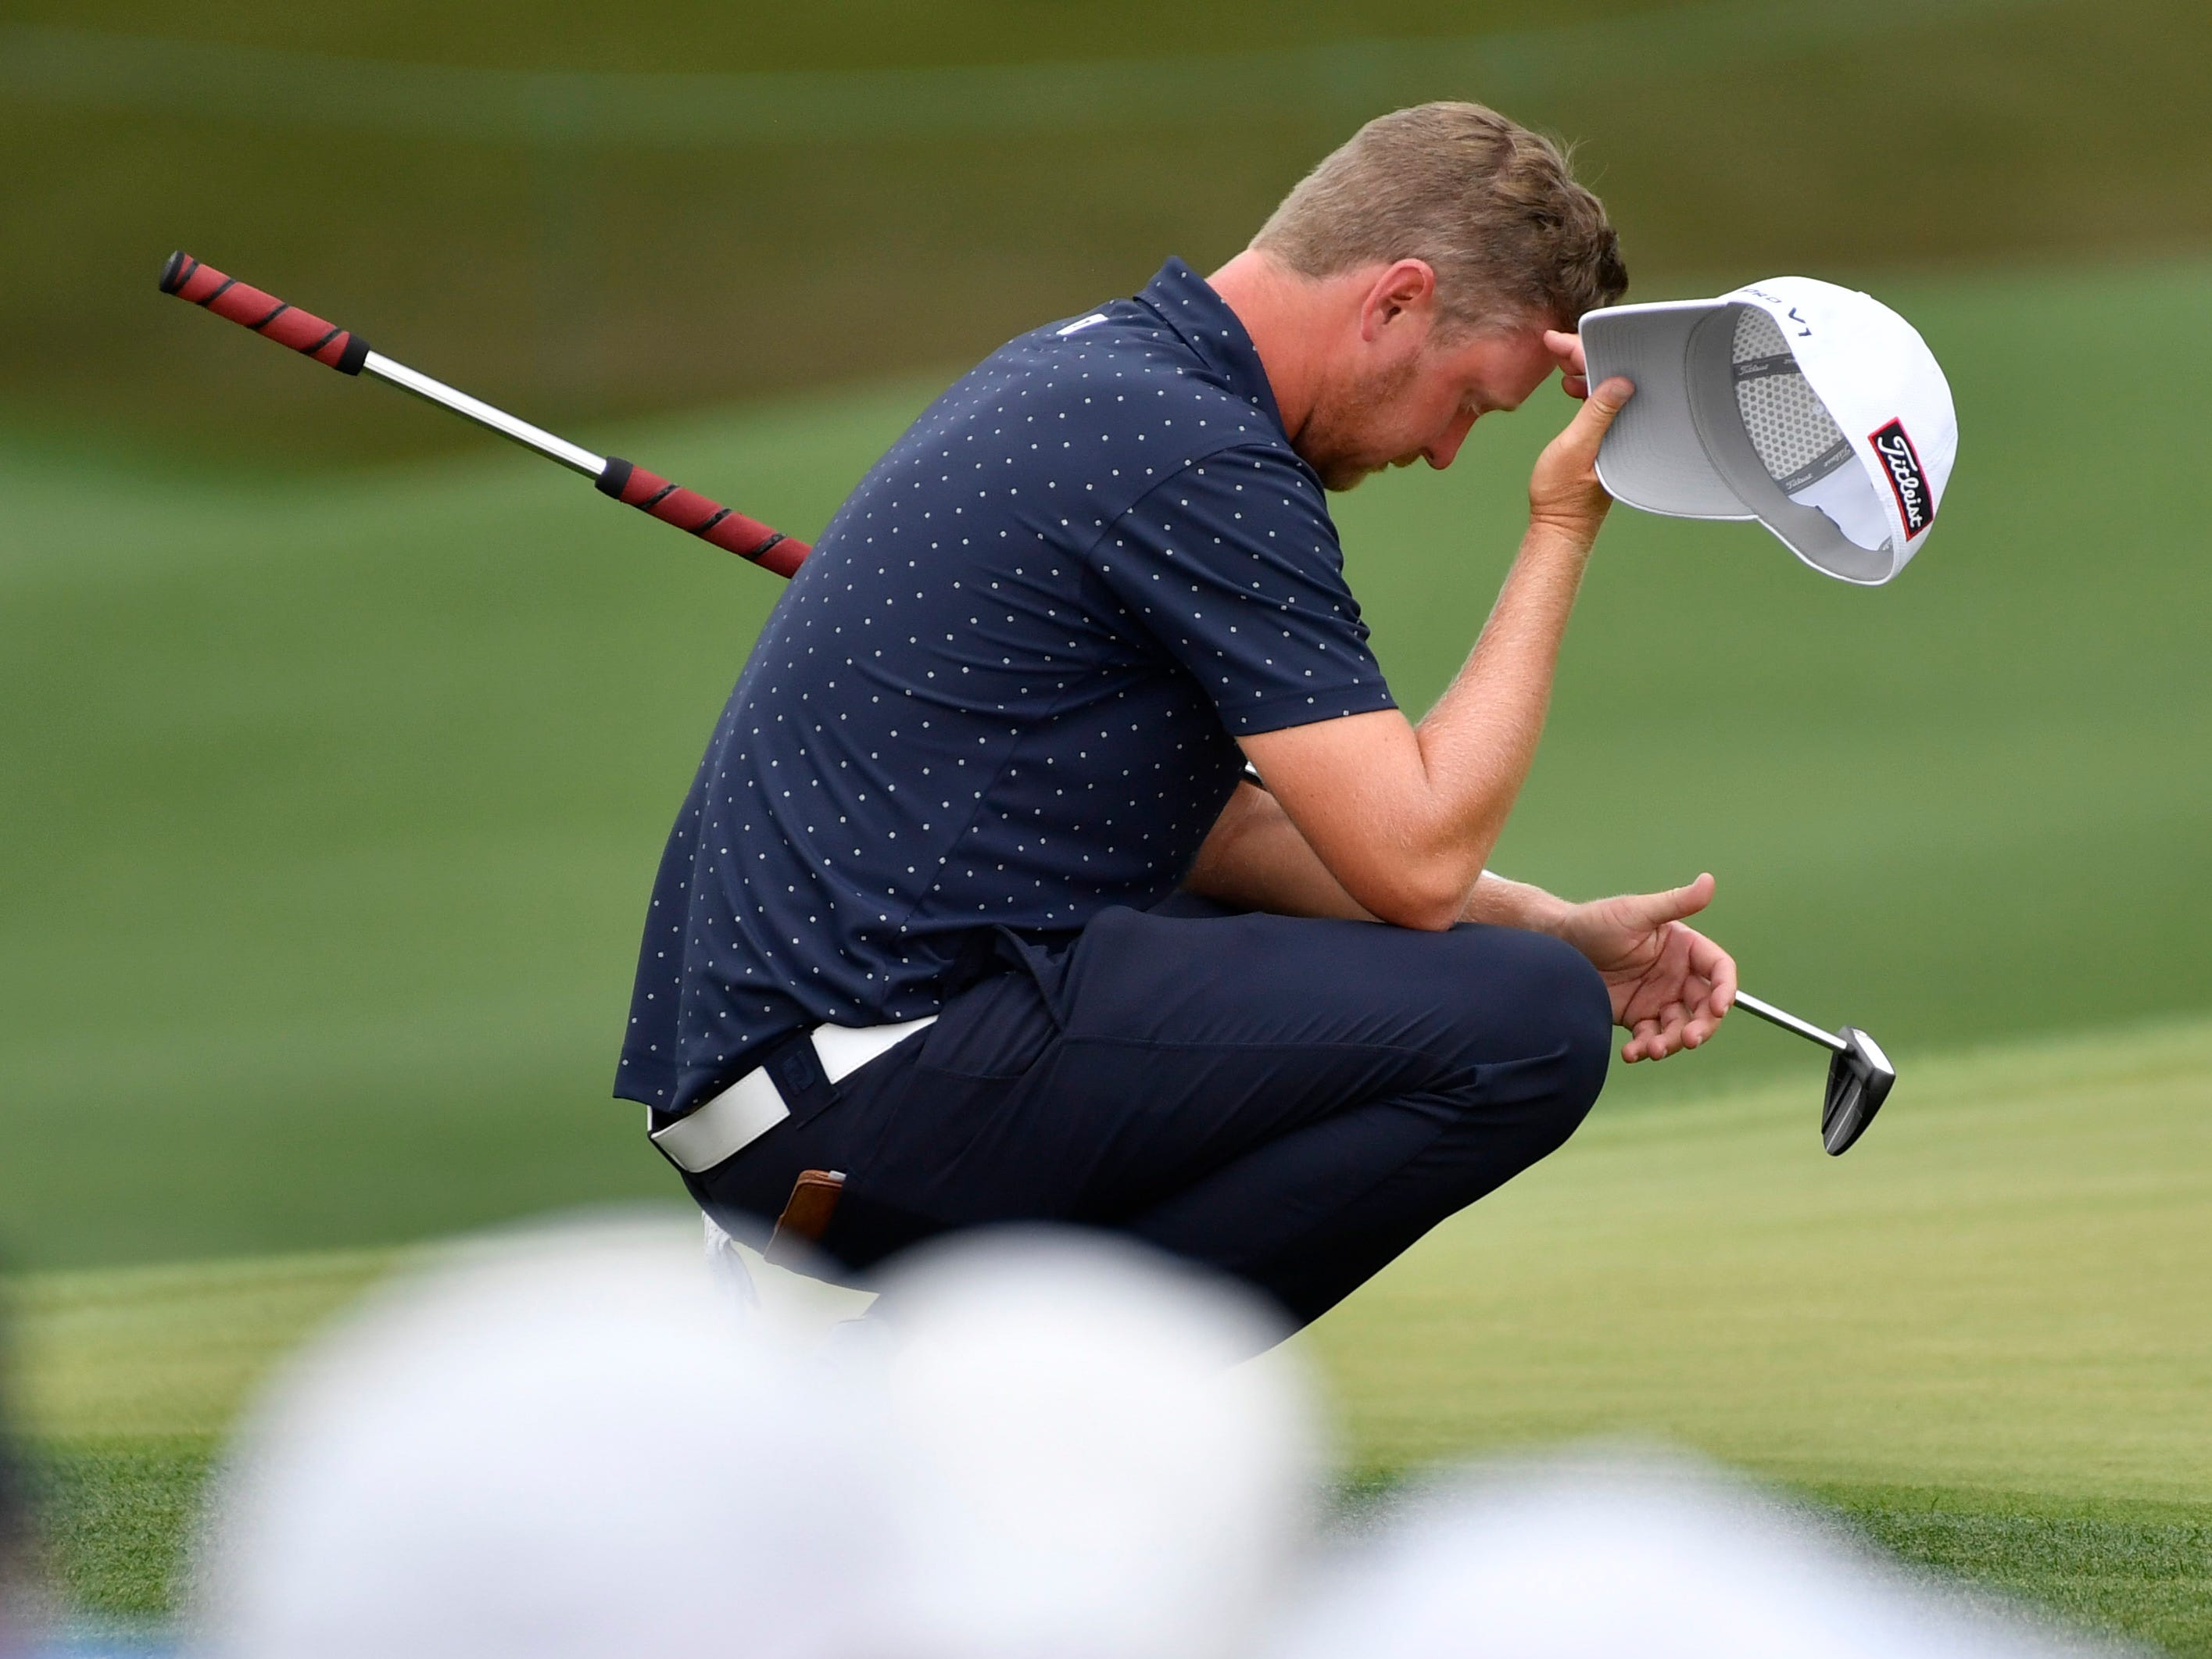 Justin Harding reacts after putting on the 18th green during the second round of the Masters.